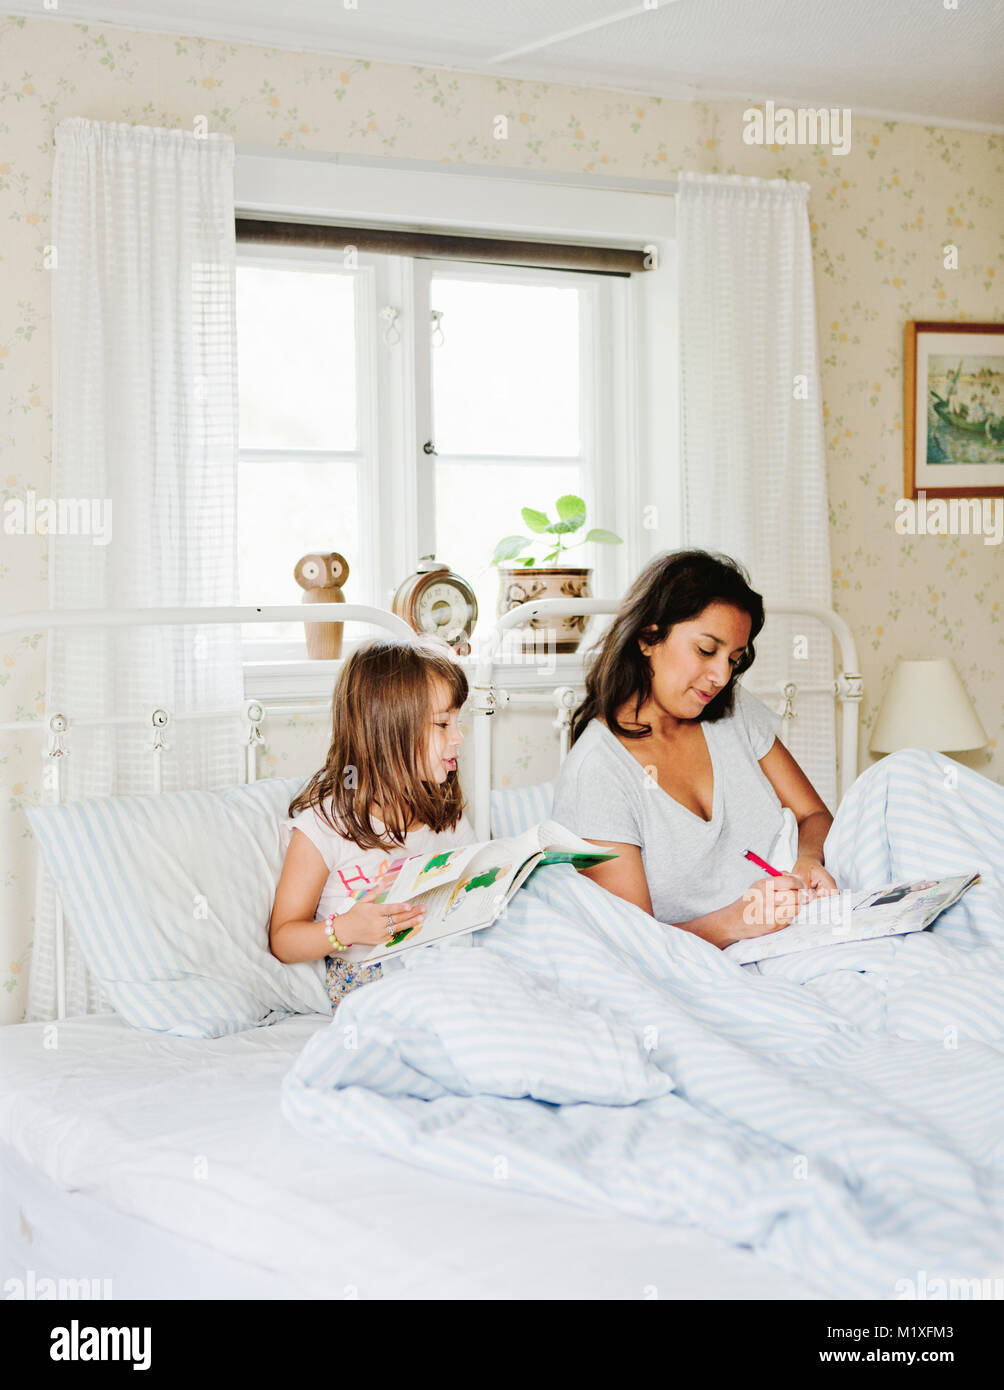 Mother and daughter reading in bed - Stock Image